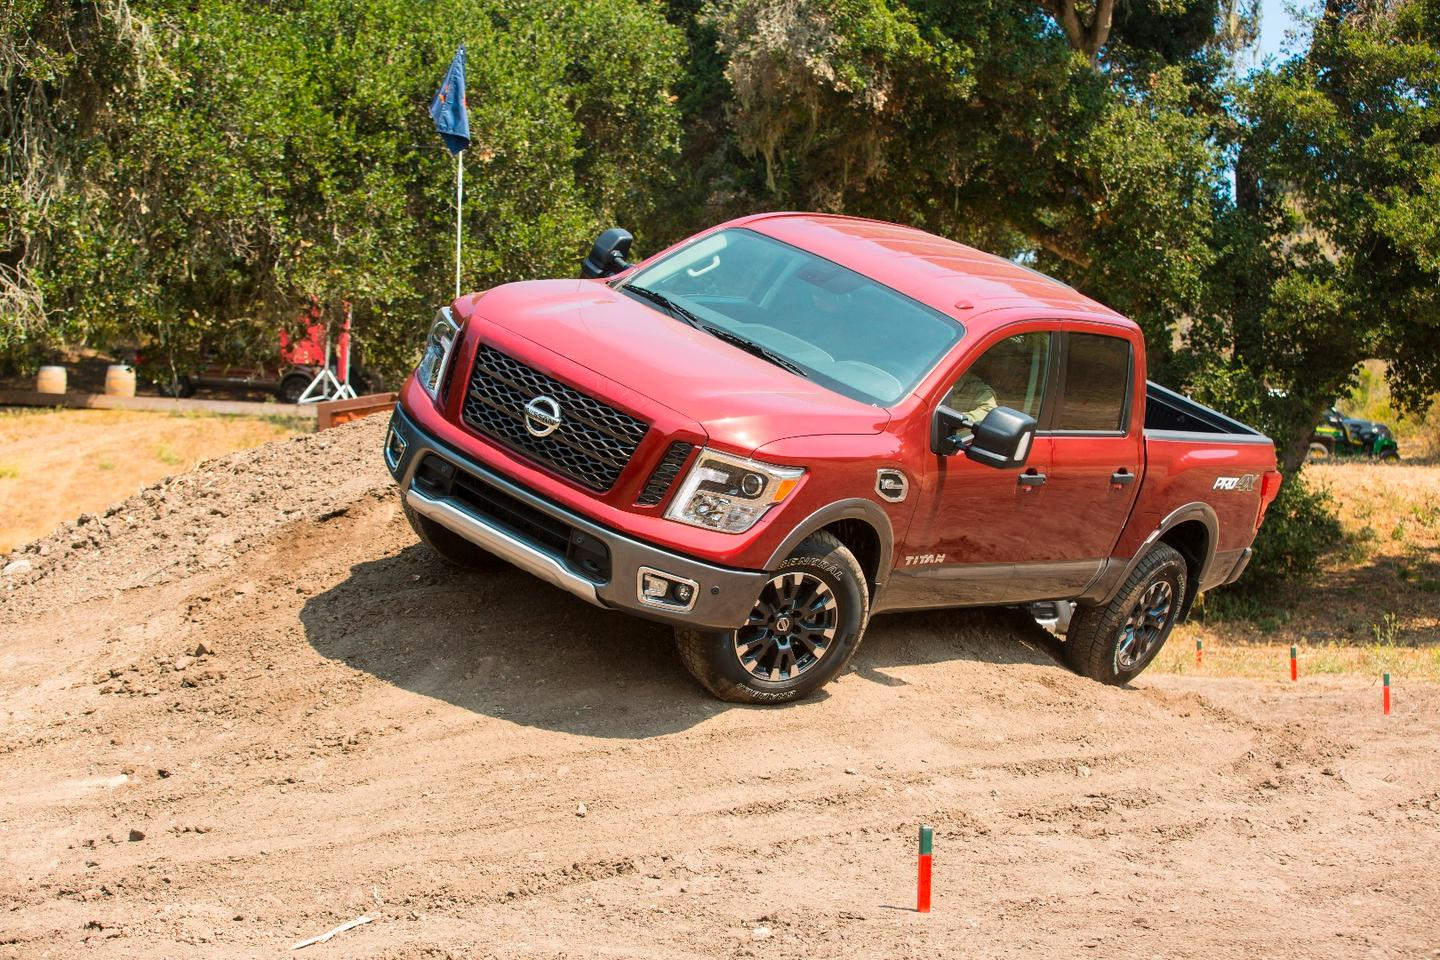 The Titan XD, especially in its Pro-4X package, has plenty of chops in walkabout